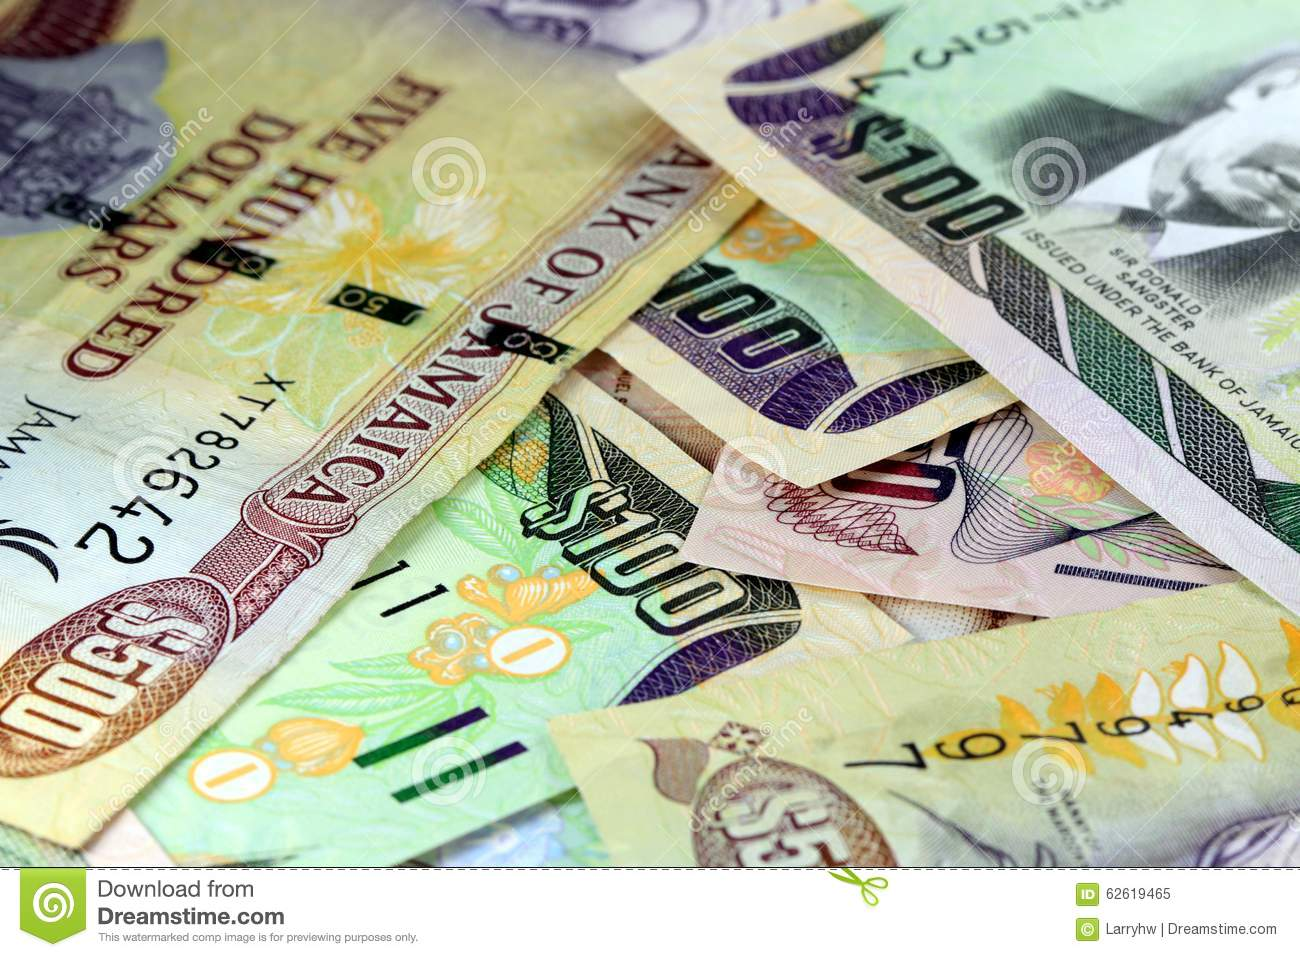 worksheet Jamaican Money jamaican money stock photos images pictures 101 jamaica currency banking and economic stability concept royalty free photo